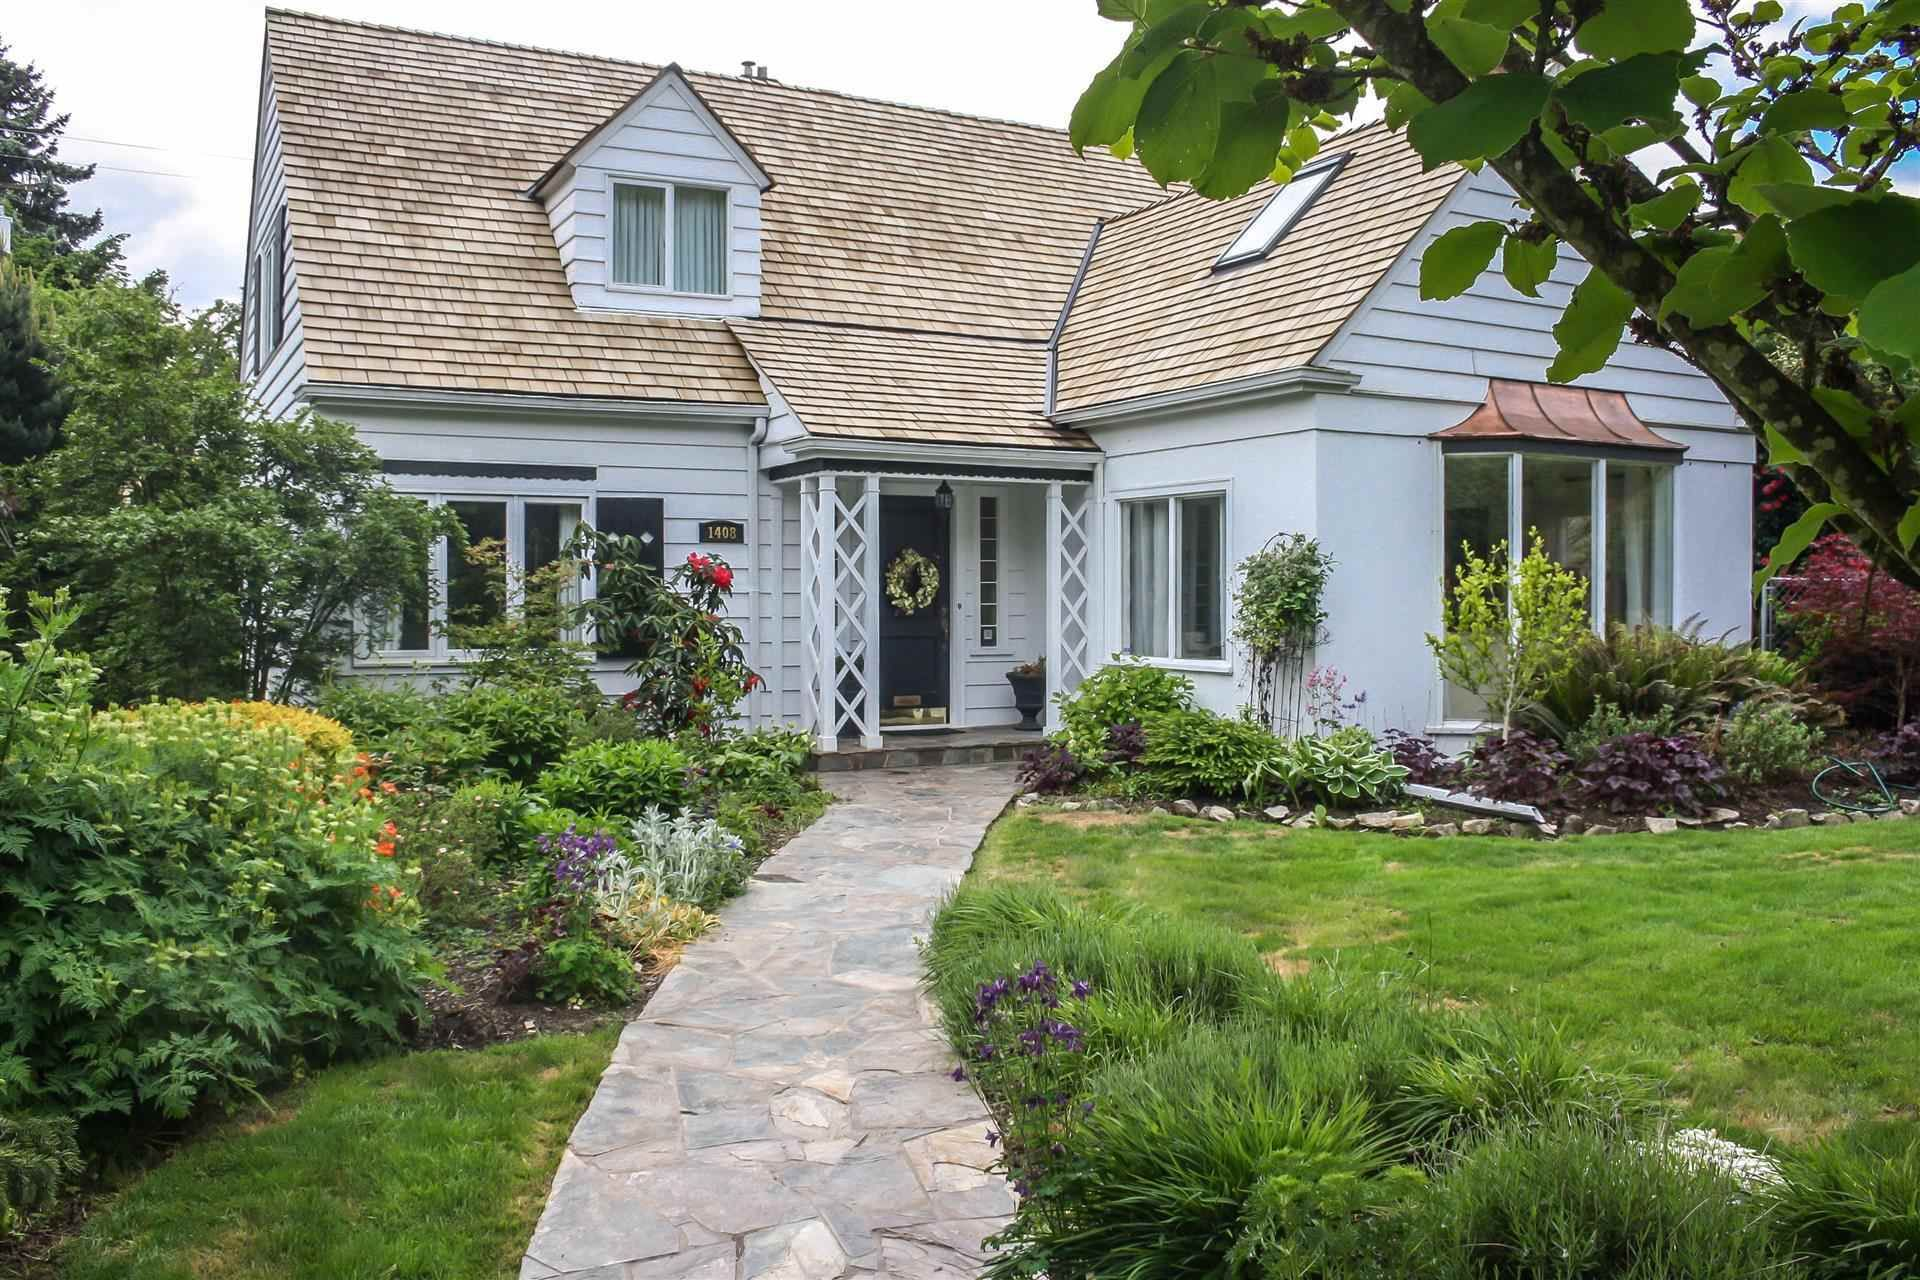 Main Photo: 1408 W 37TH Avenue in Vancouver: Shaughnessy House for sale (Vancouver West)  : MLS®# R2477860